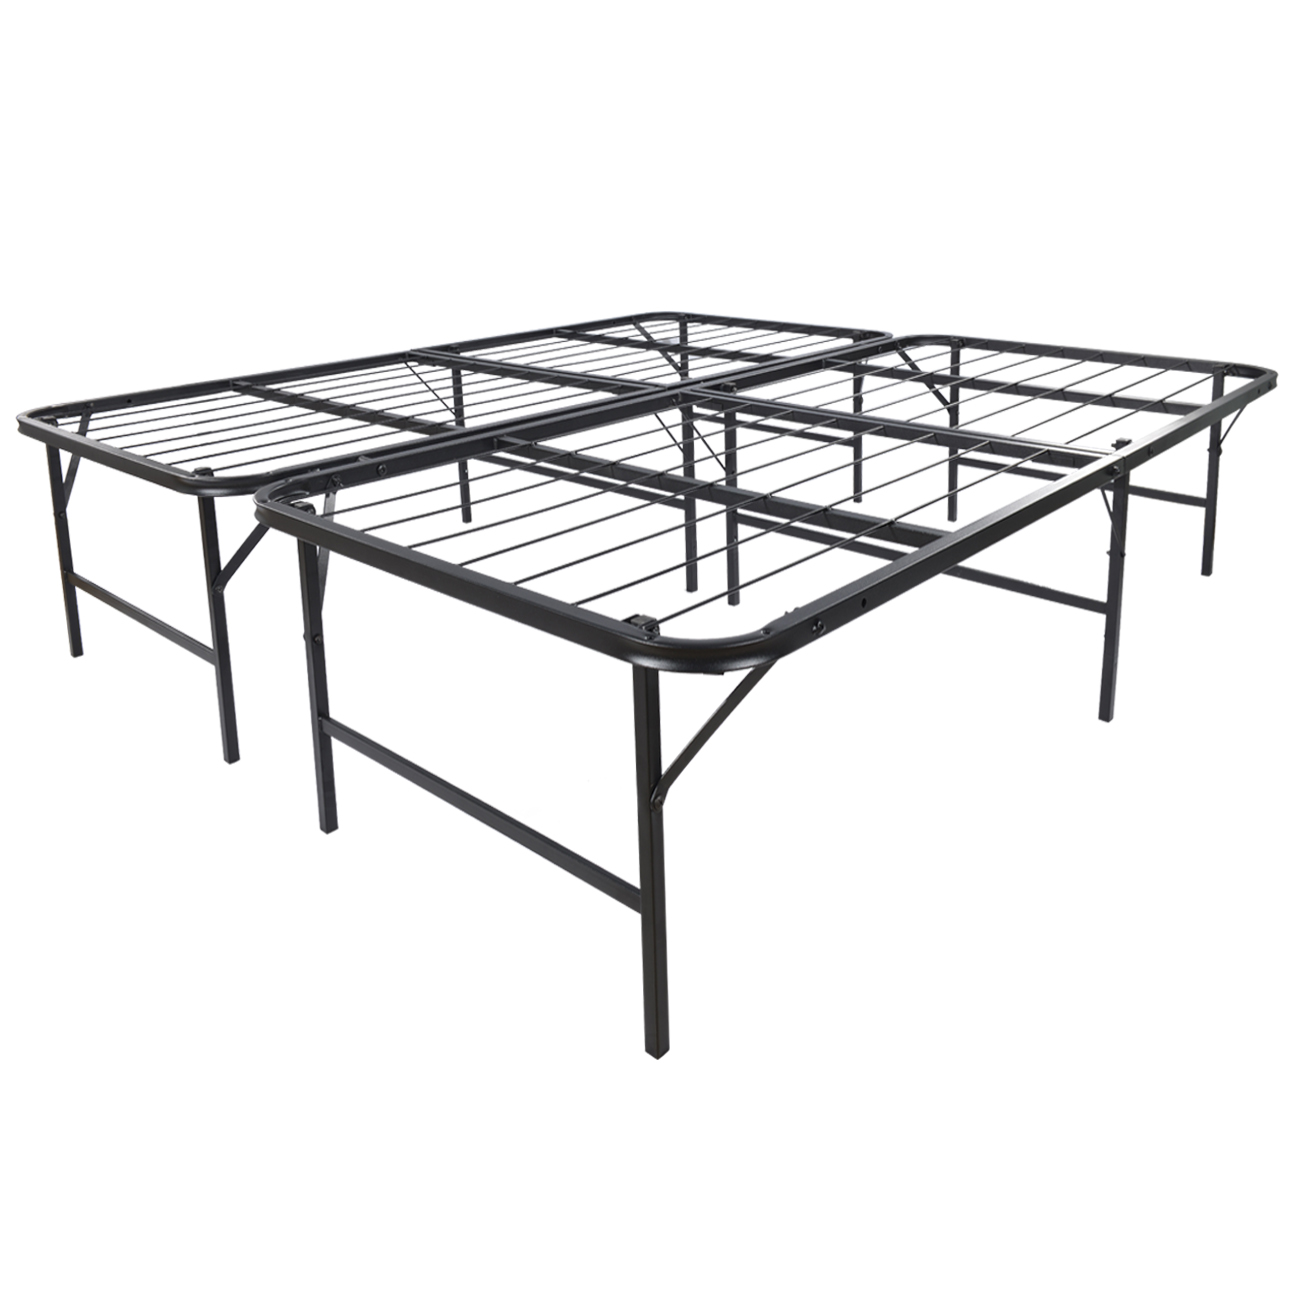 Platform Bed Frame King Mattress Foundation Foldable